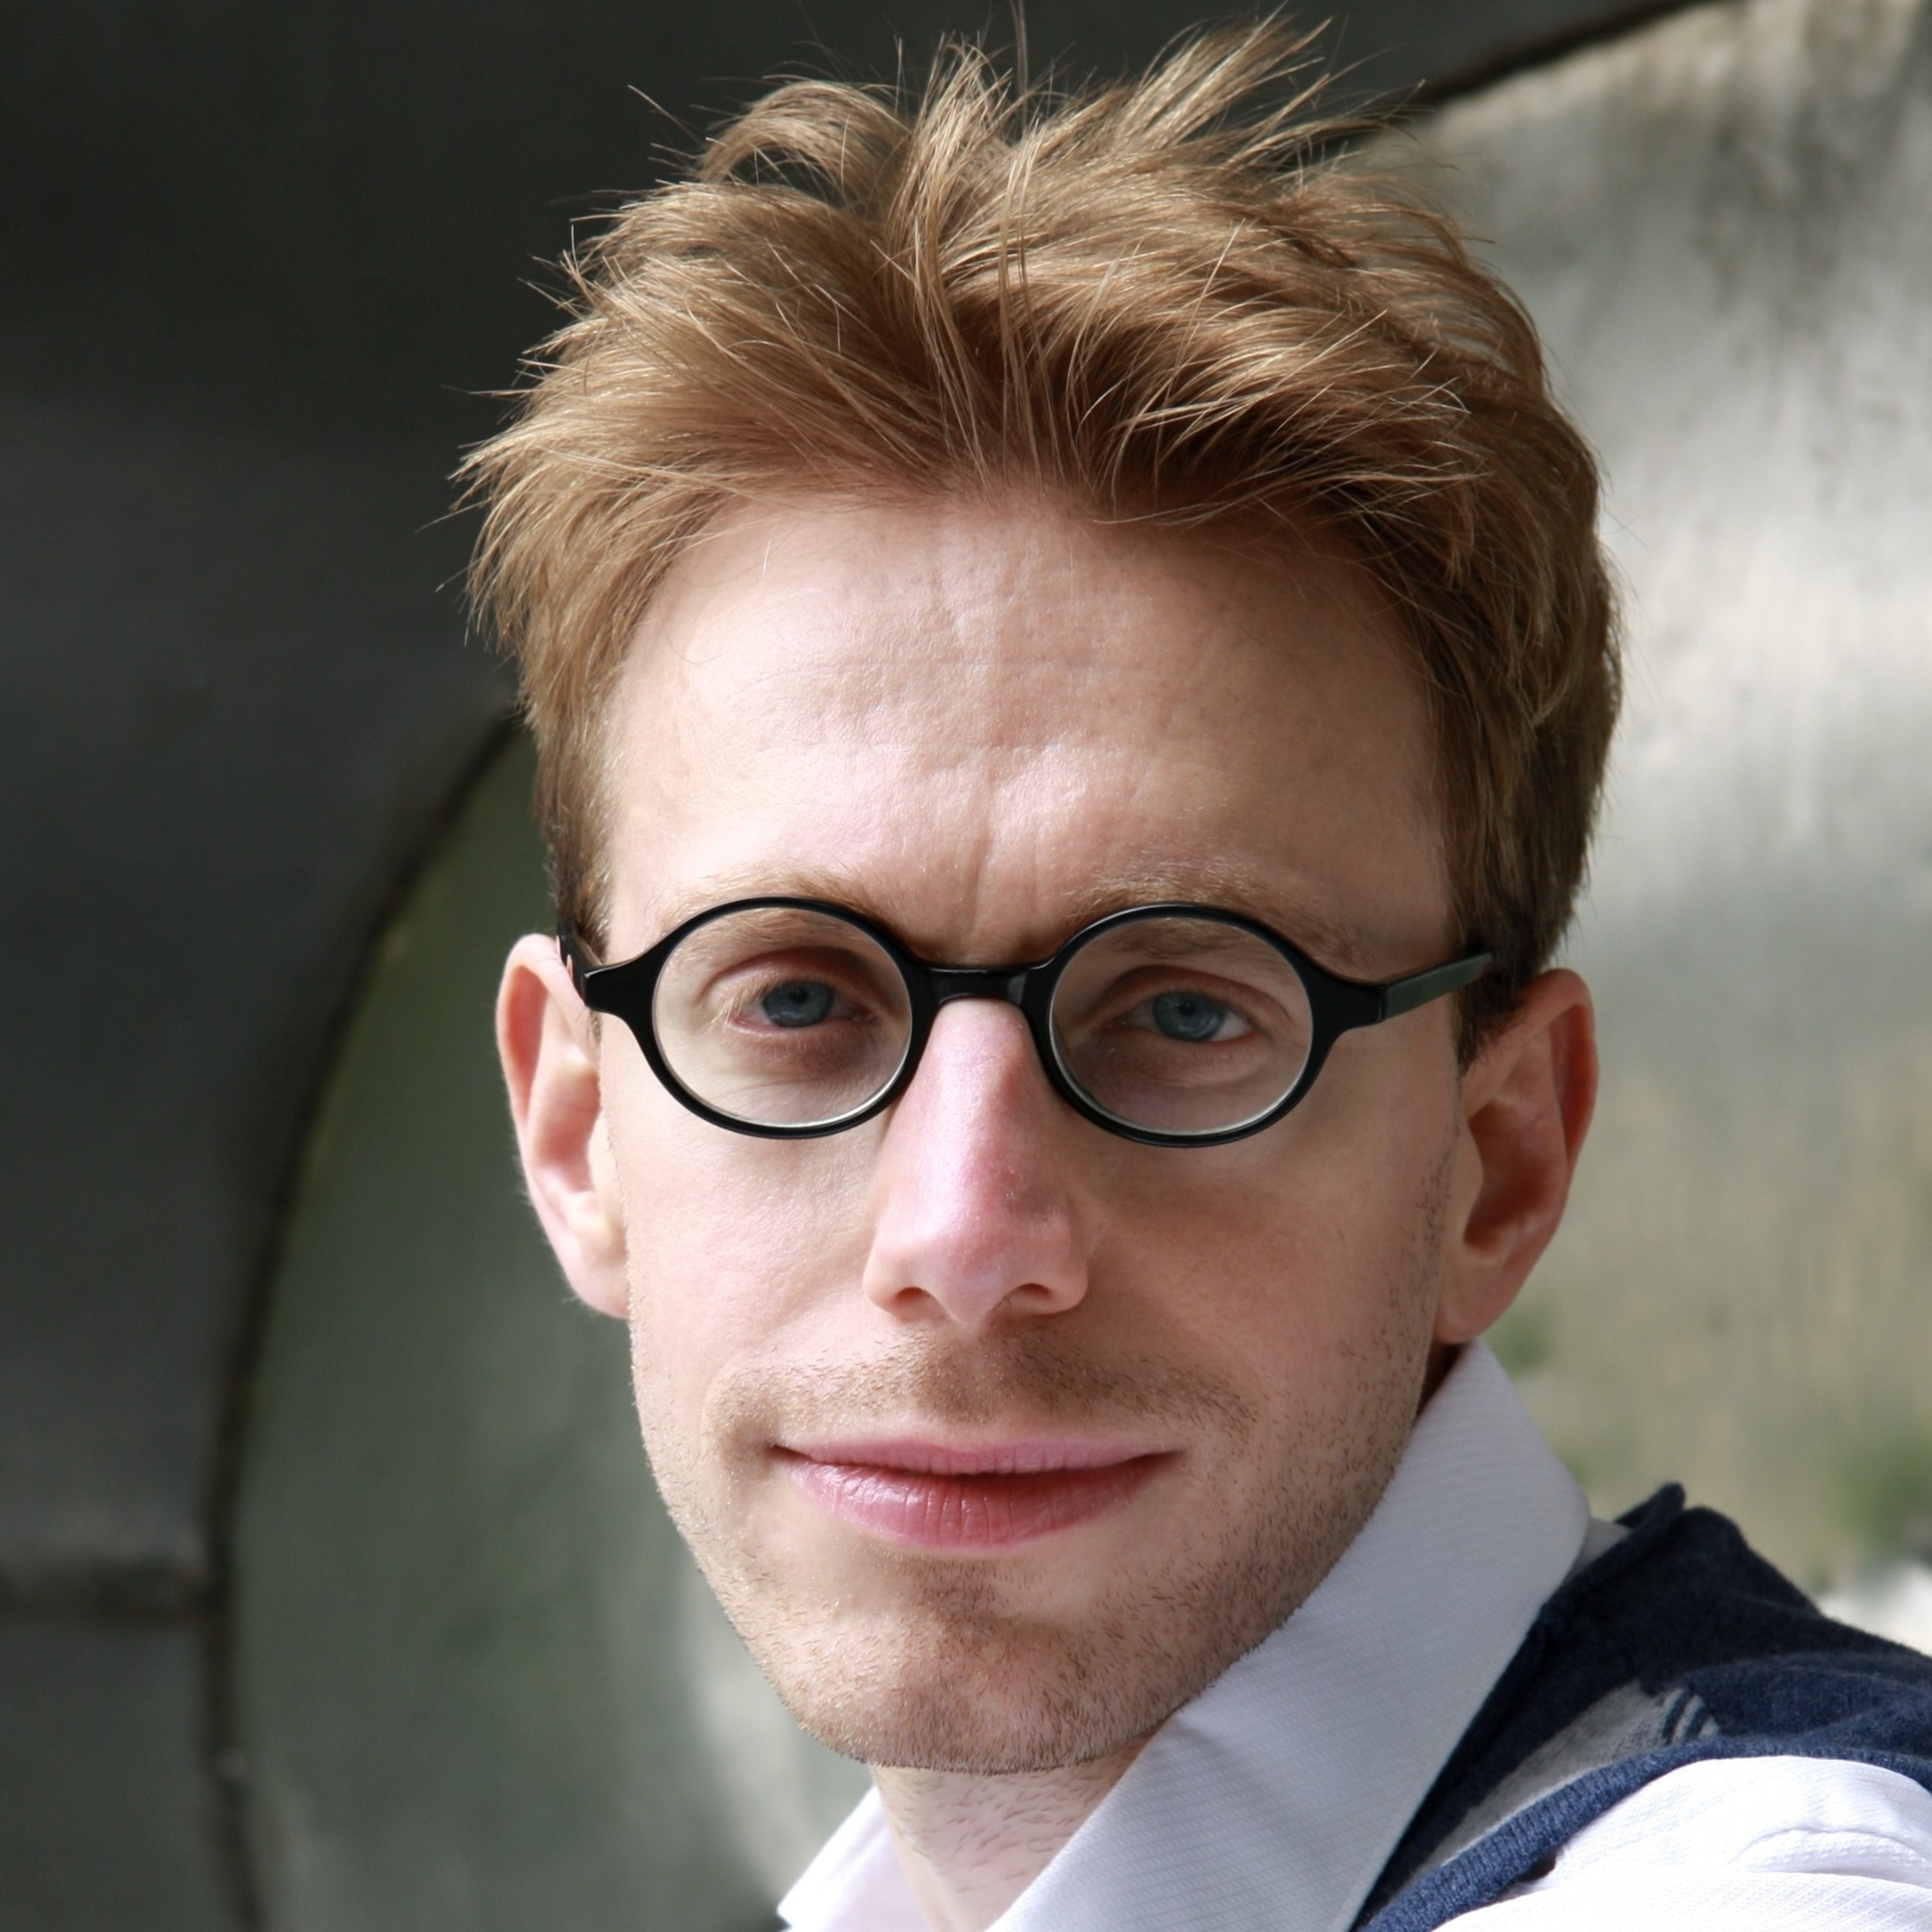 Daniel Tammet's other books include Born on a Blue Day and Embracing the Wide Sky.